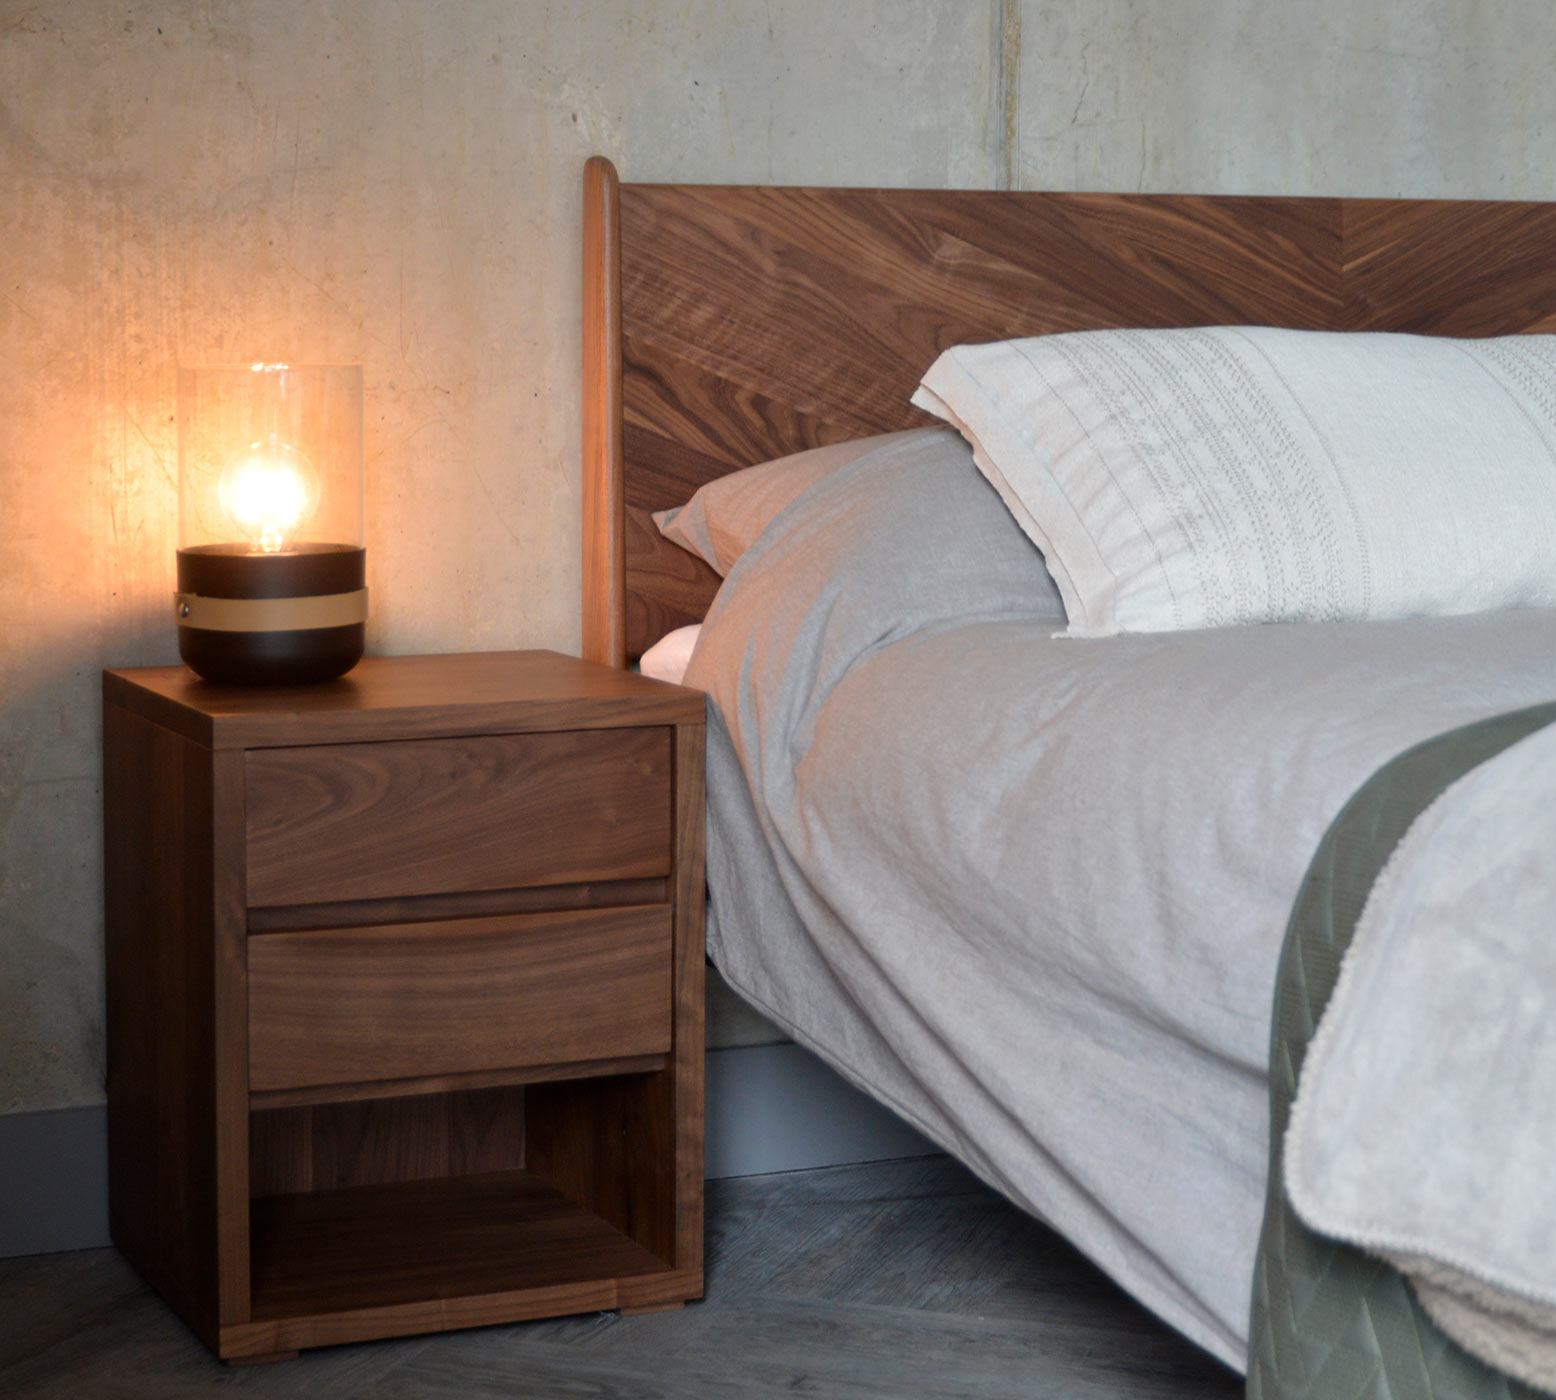 Cube Bedside table with 2 drawers in Walnut to match our Walnut Hoxton Bed